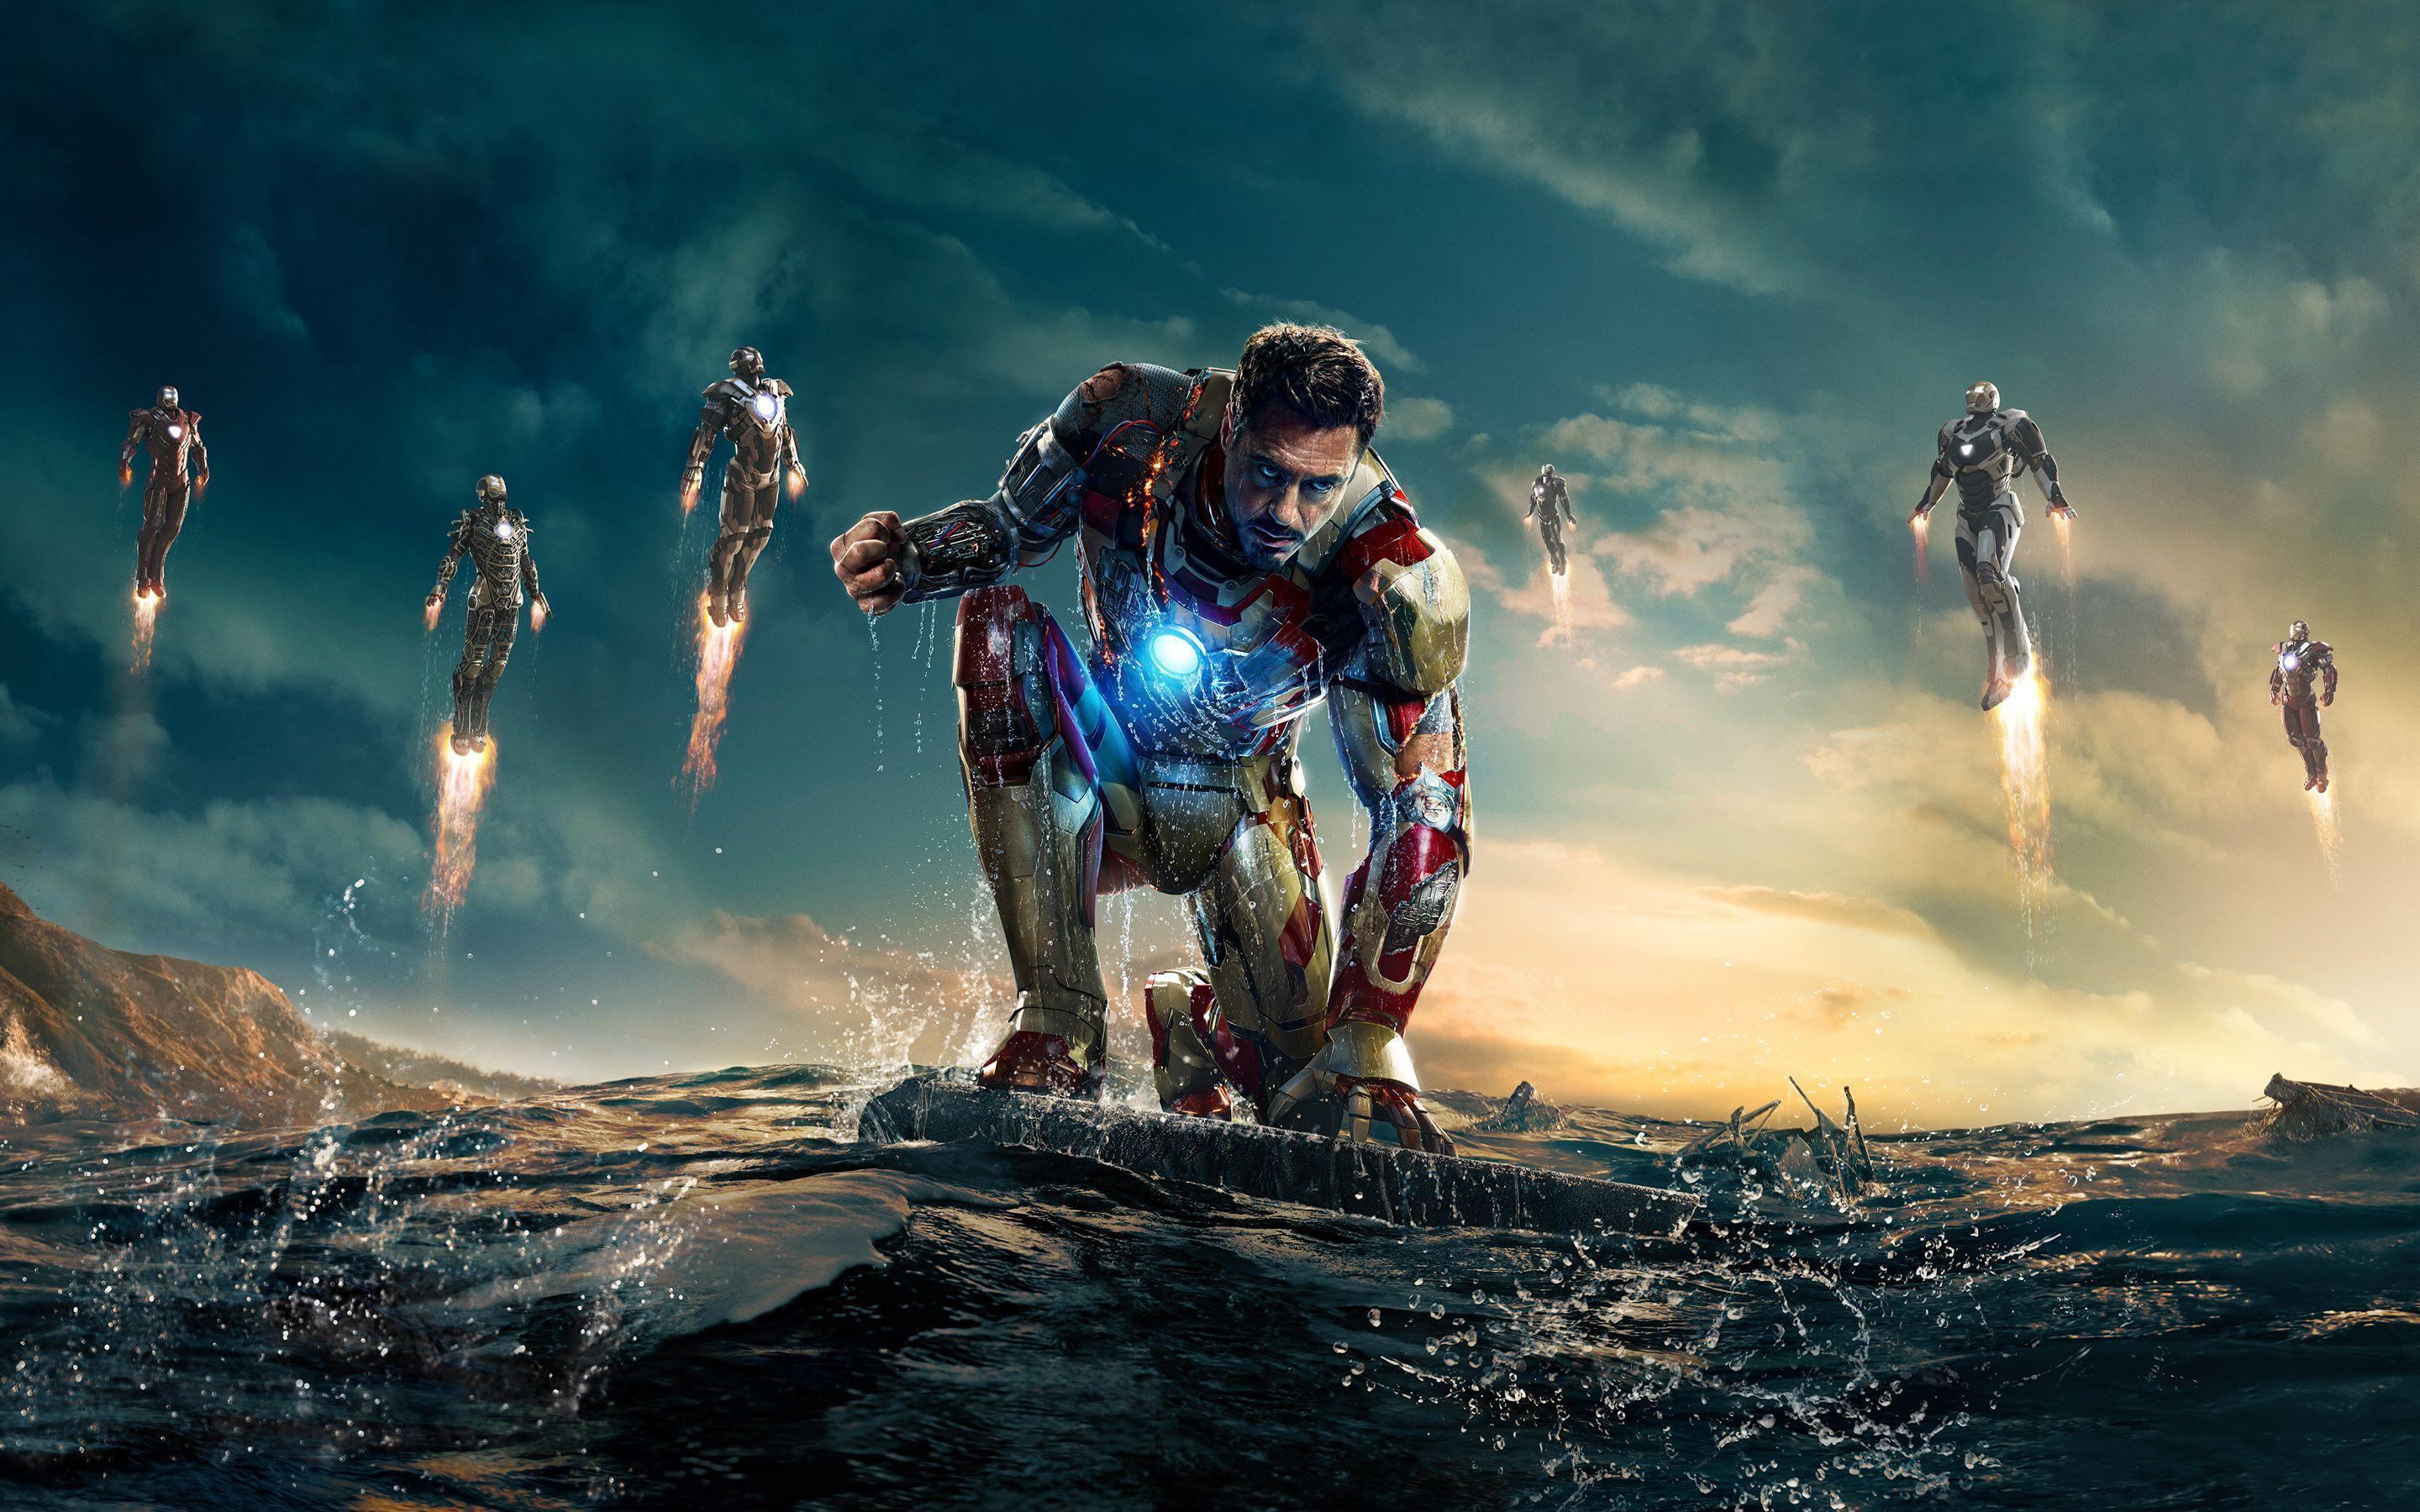 iron man 3 wallpapers - wallpaper cave